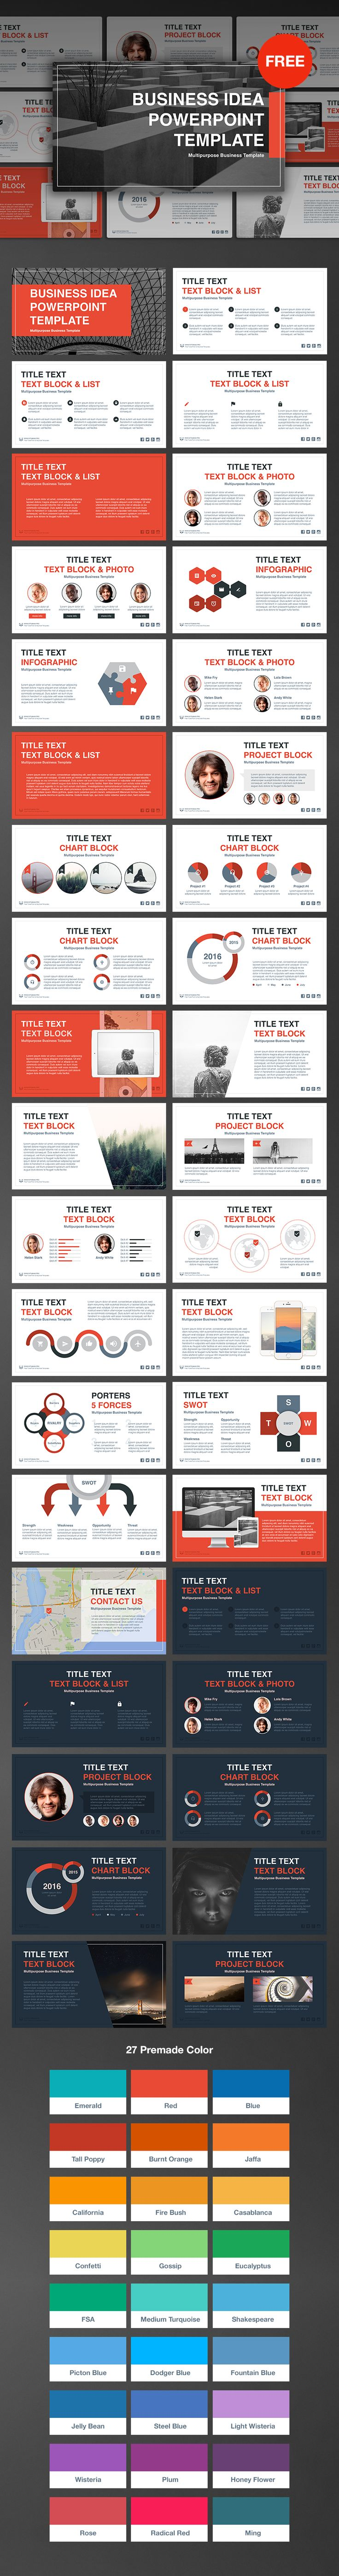 Best 25 free powerpoint templates download ideas on pinterest free download powerpoint template httpshislideproductbusiness toneelgroepblik Gallery